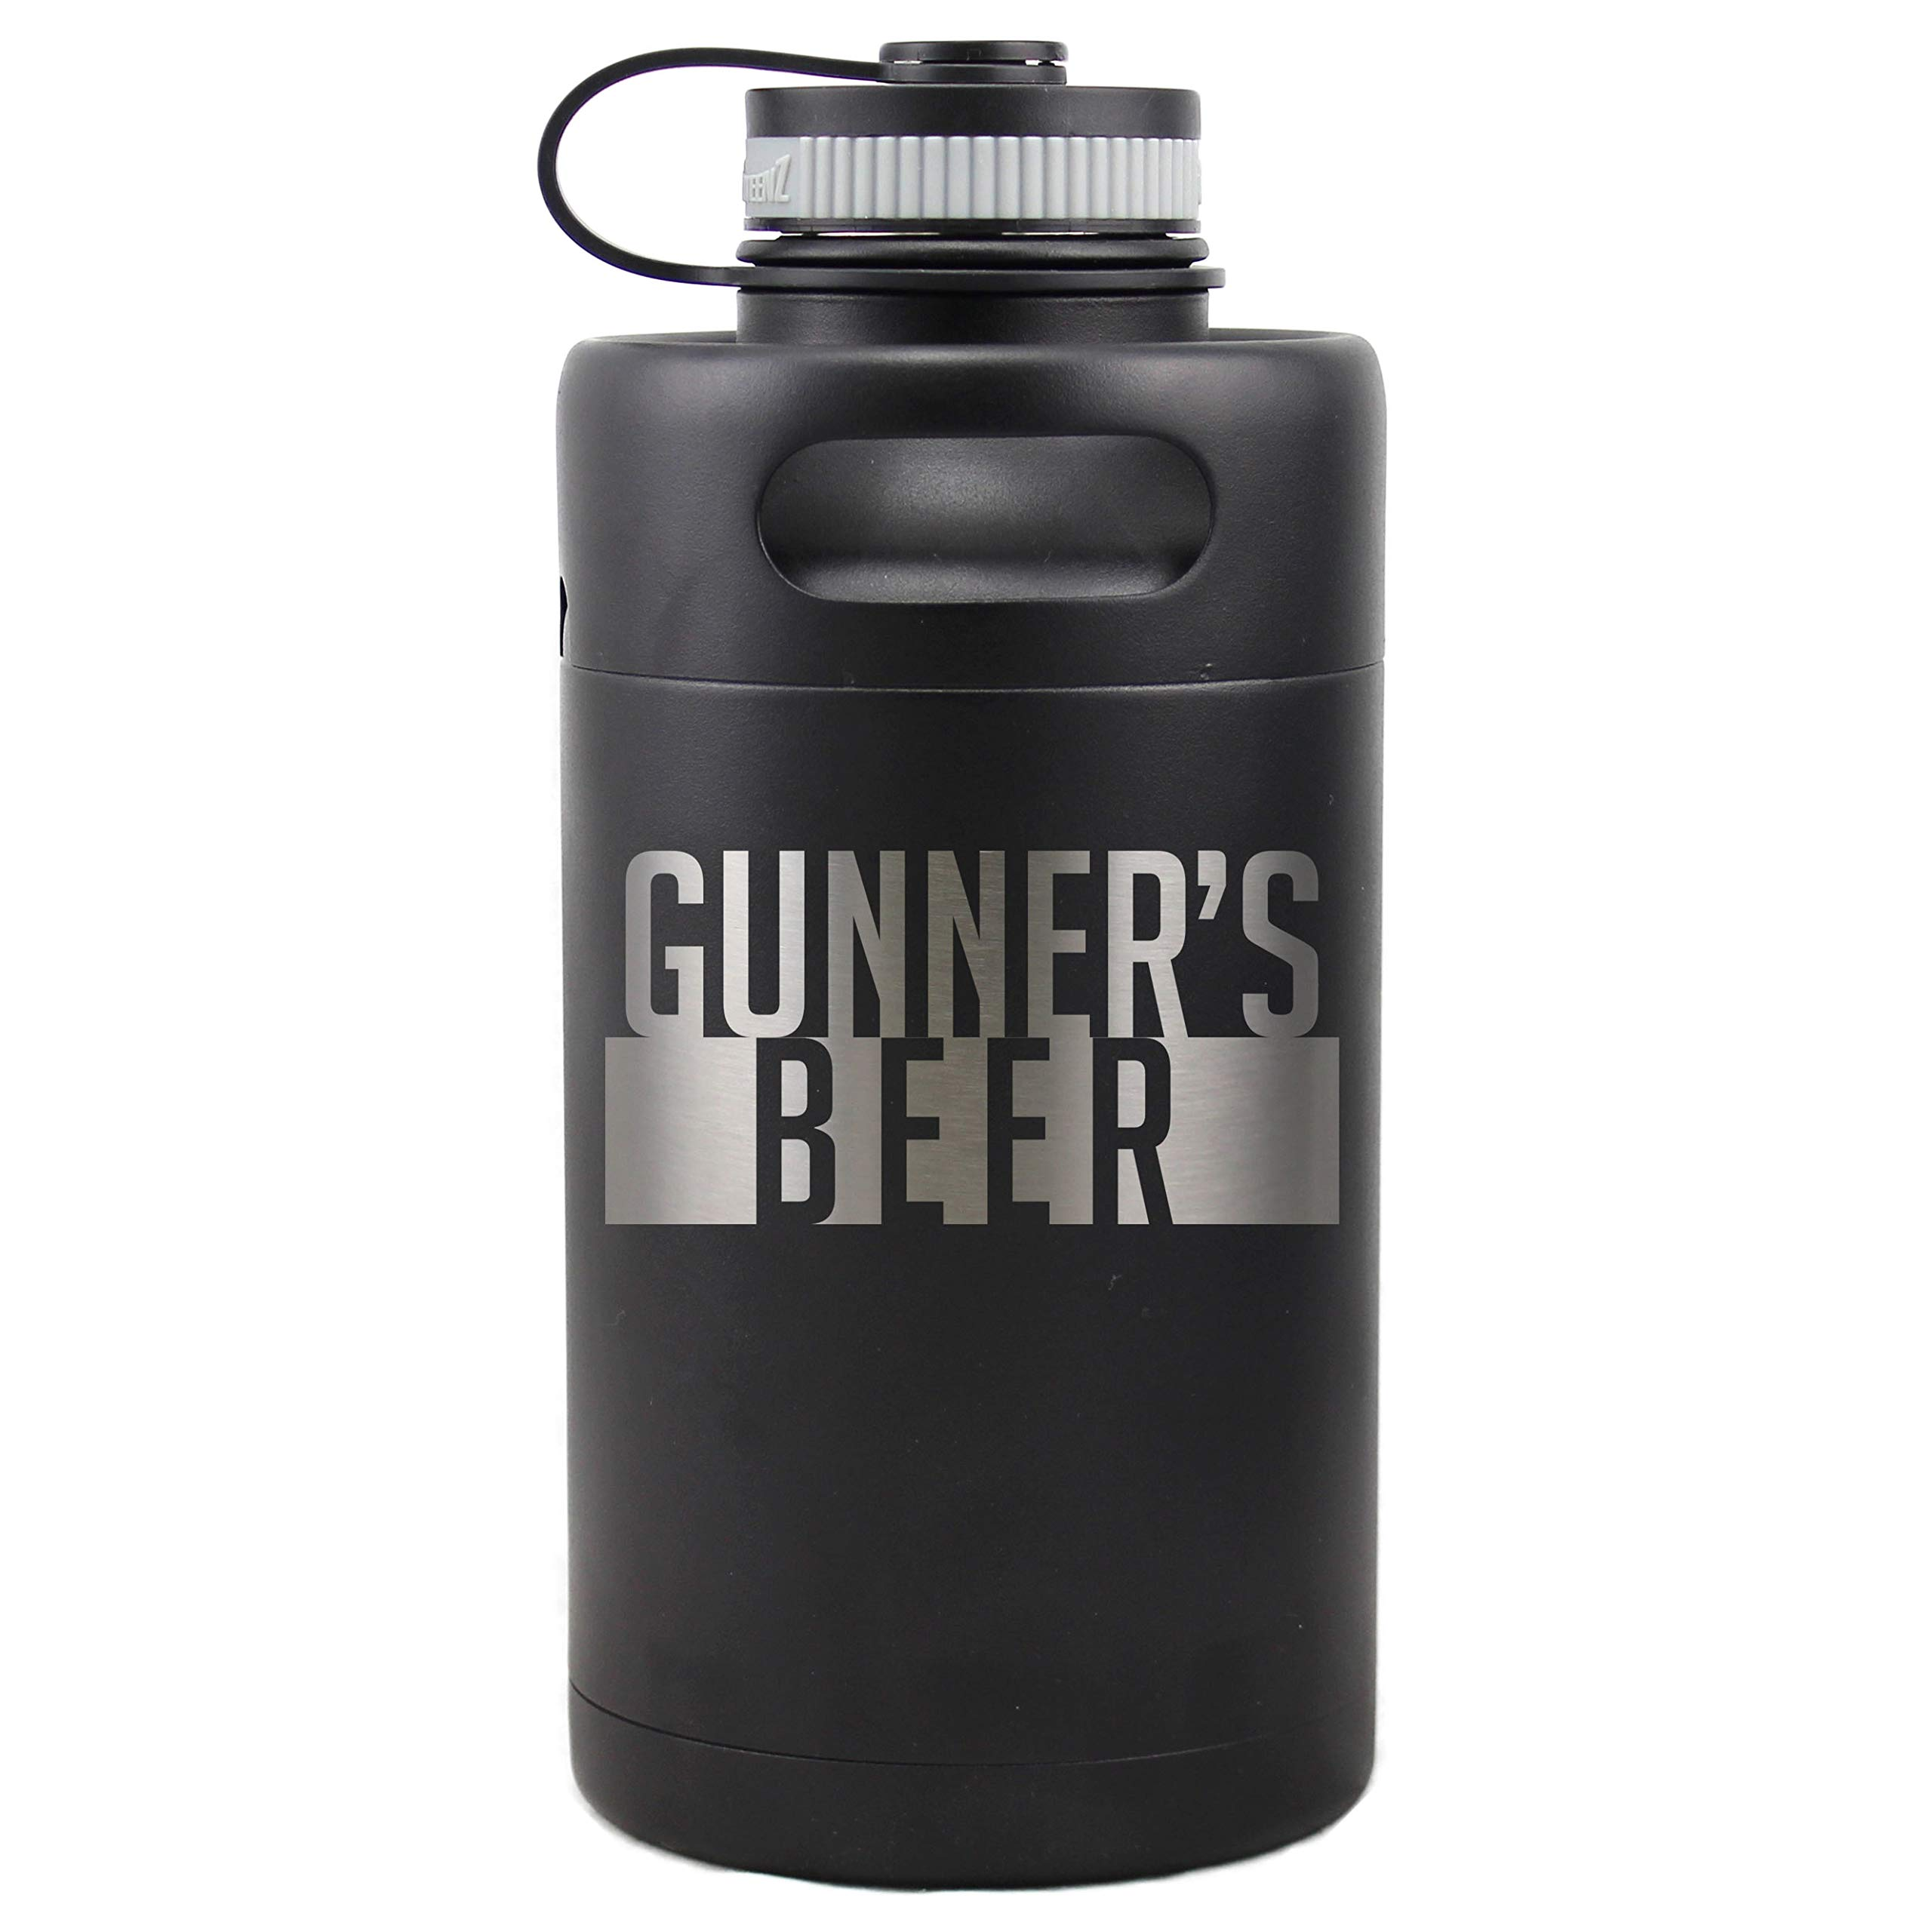 Personalized Etched Insulated Beer Growler 64oz Keg (Matte Black)